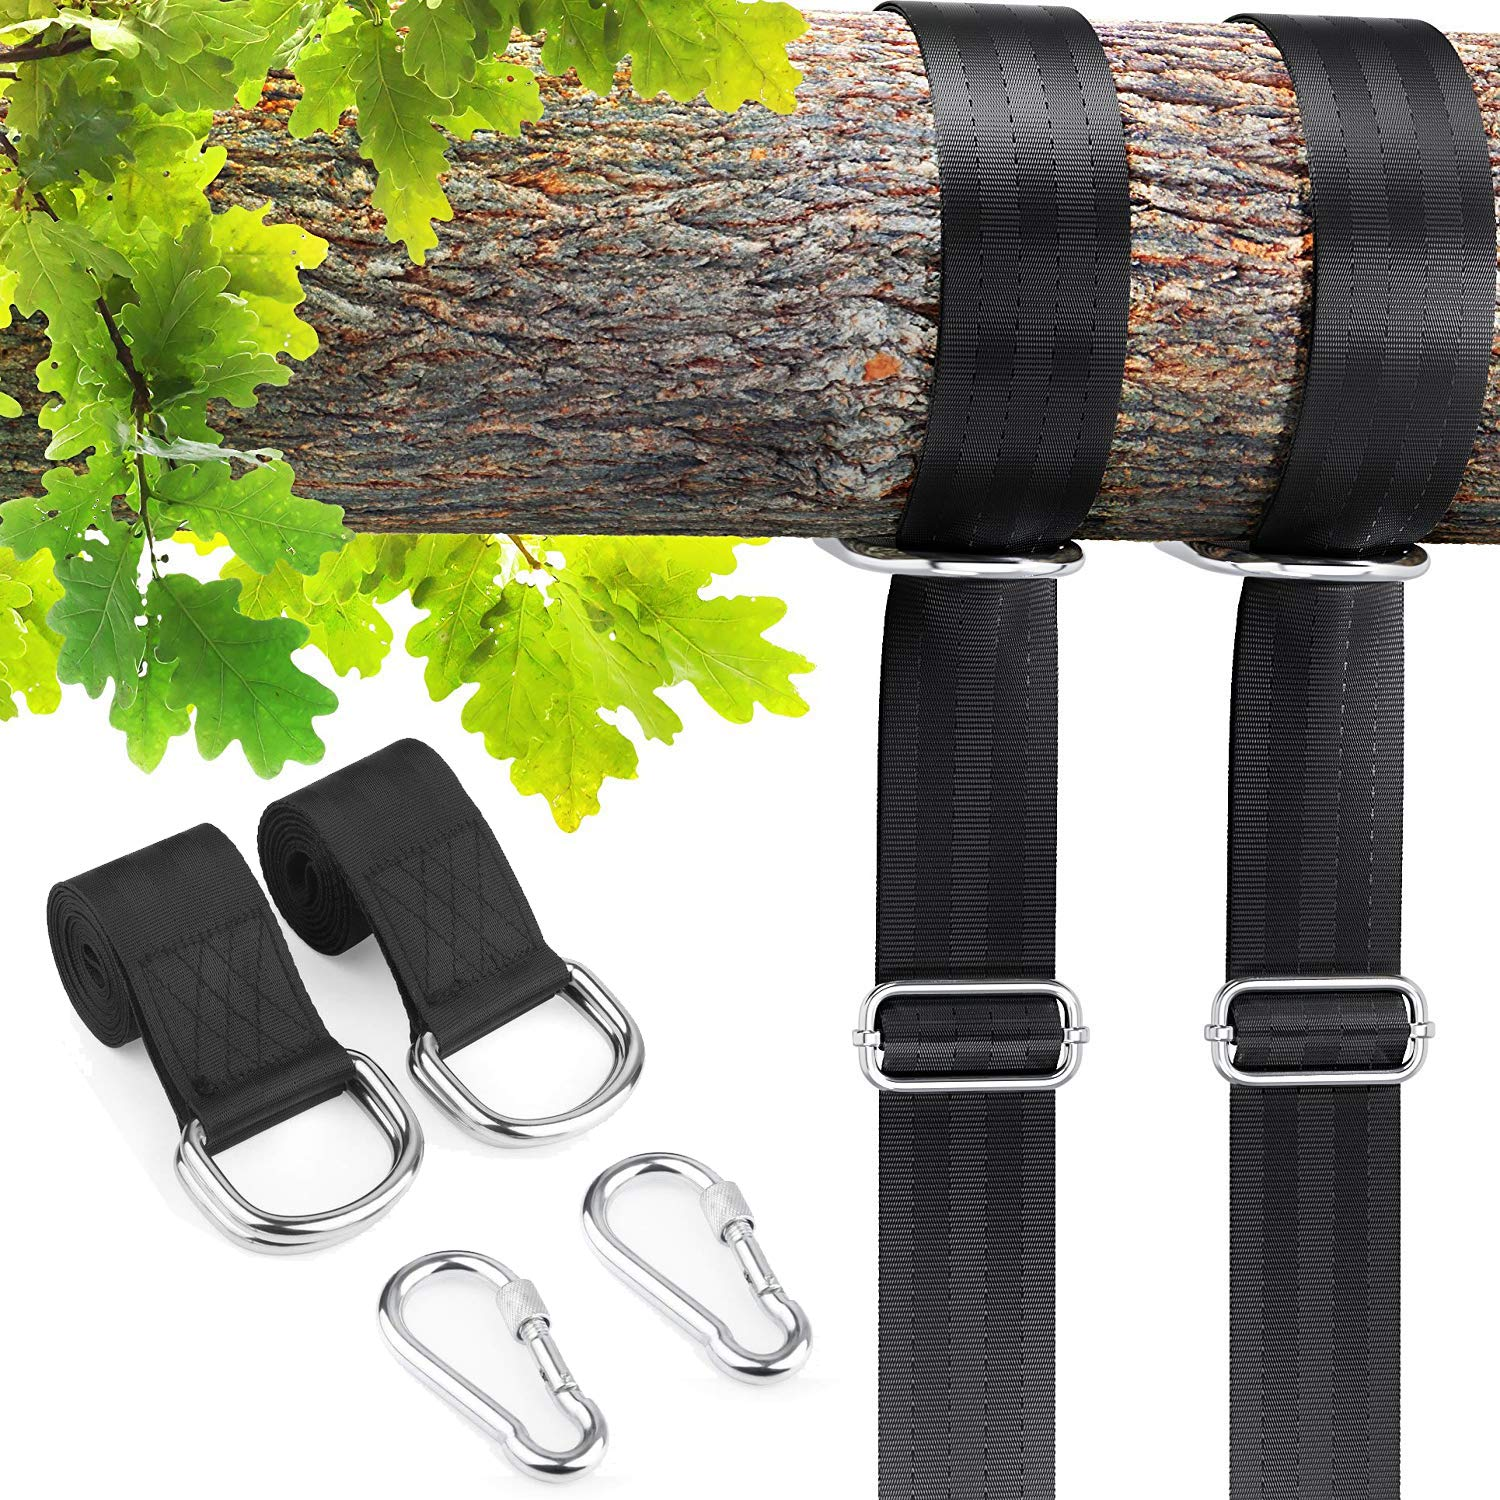 MONEIL Tree Swing Hanging Straps Kit Holds 2200 lbs,Two 5ft Adjustable Straps with Safer Heavy Duty Carabiner and Swivel Hook,Perfect for Hammocks & Most Swing Seats - Baby, Toddler, Kids Safety